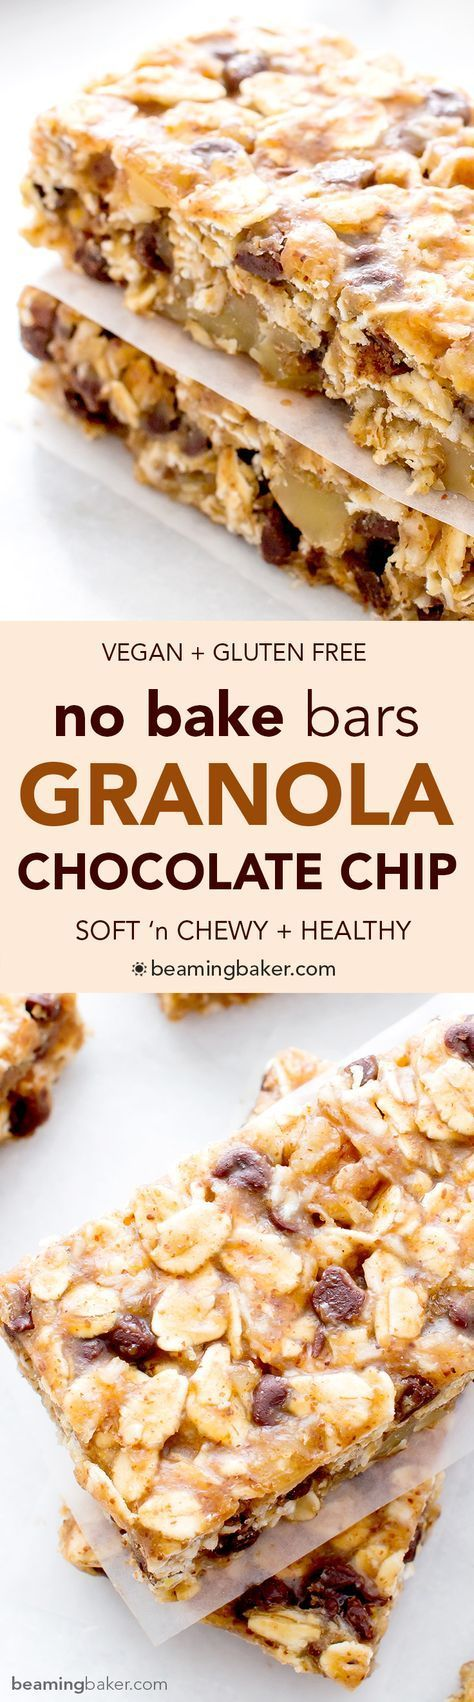 94 best images about Granola Recipes on Pinterest | No ...